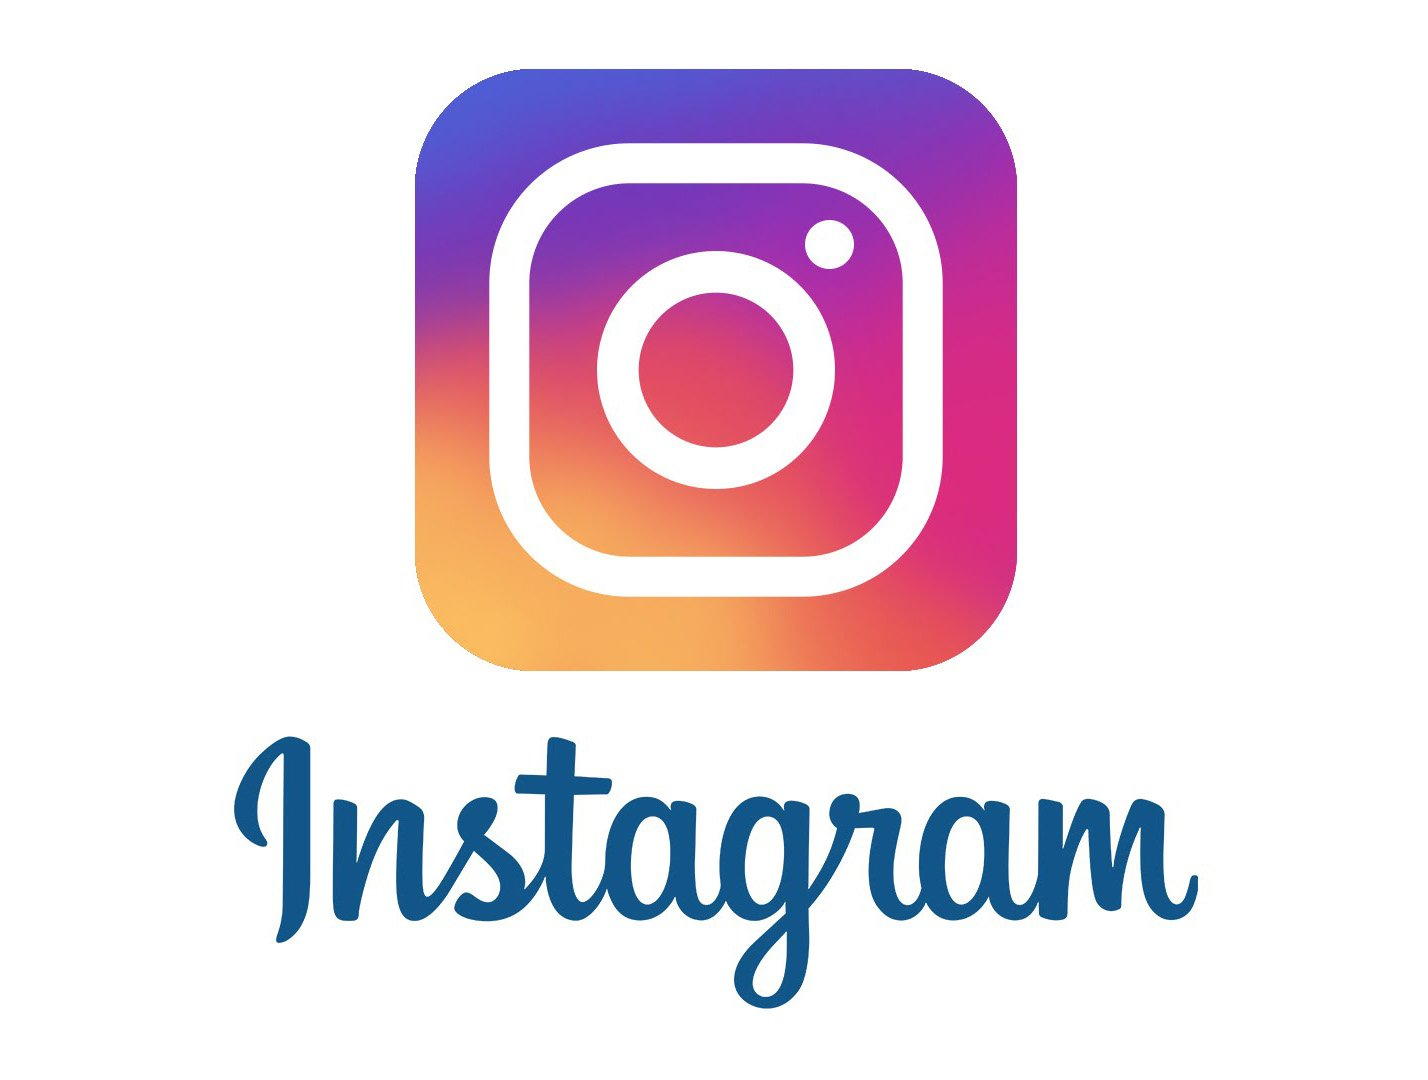 Instagram logo and symbol, meaning, history, PNG